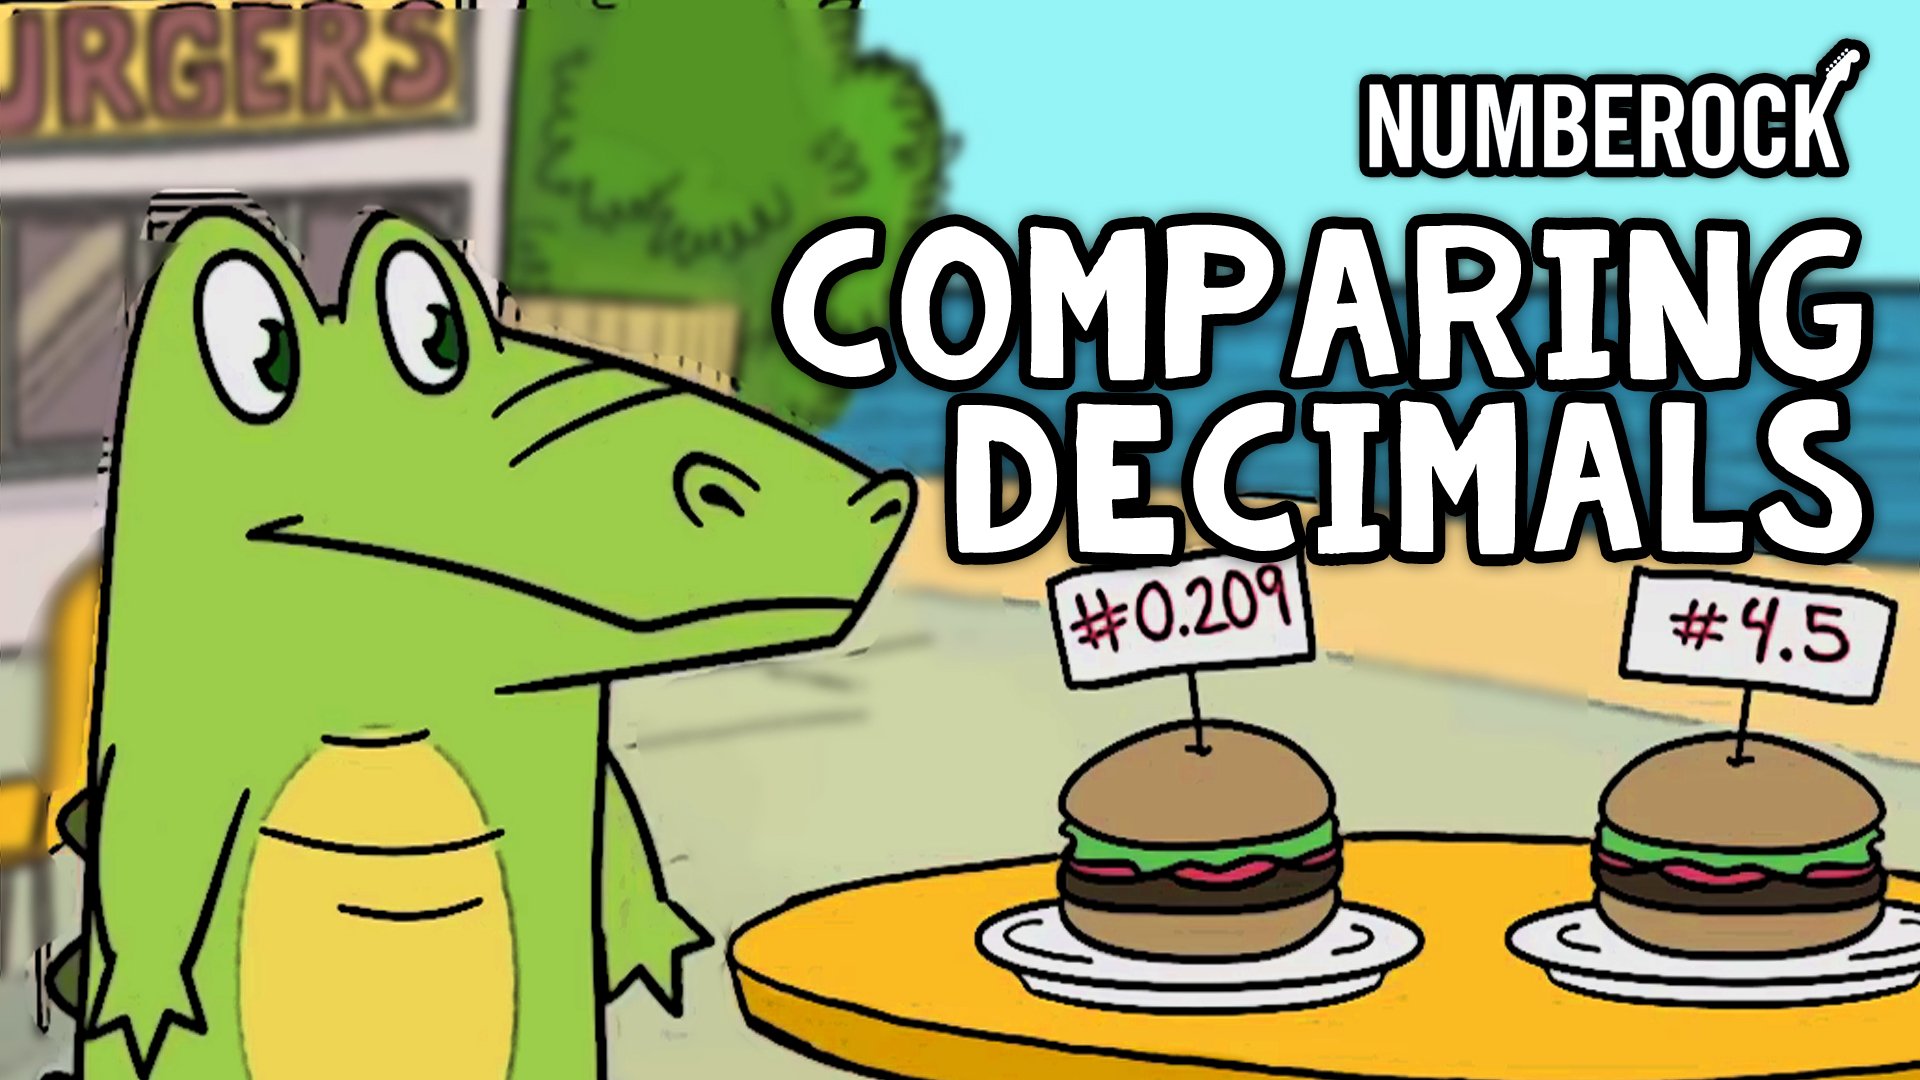 hight resolution of Comparing Decimals Song   Video Lesson by NUMBEROCK